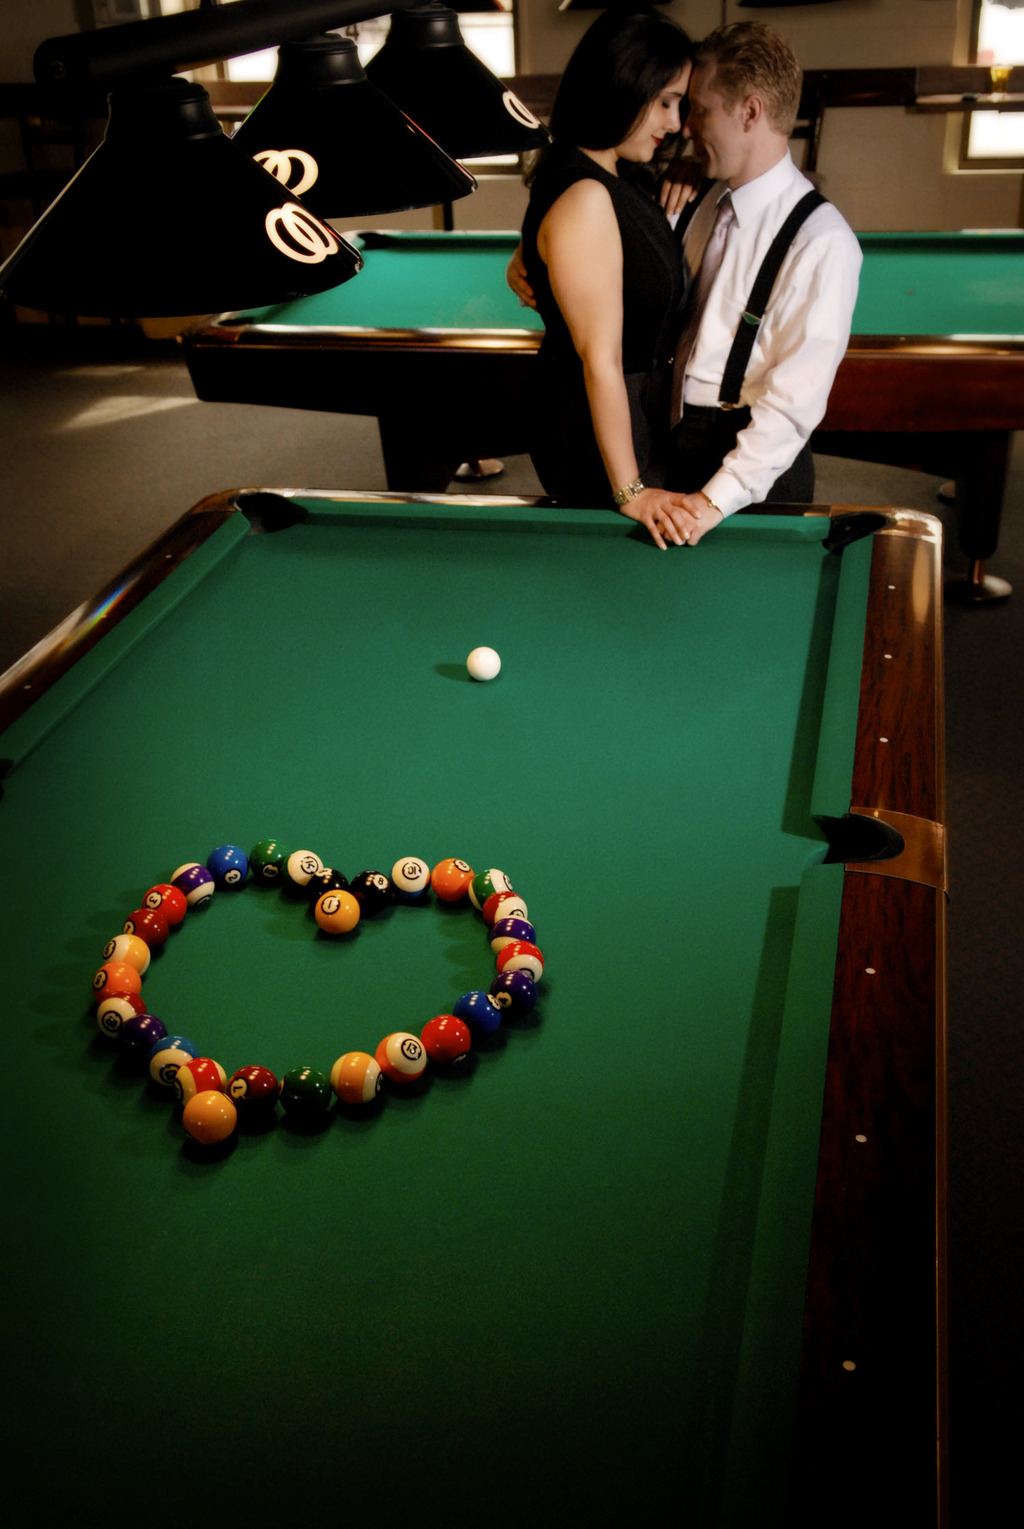 Bride and groom-to-be pose by billiard table, pool balls arranged in romantic heart shape